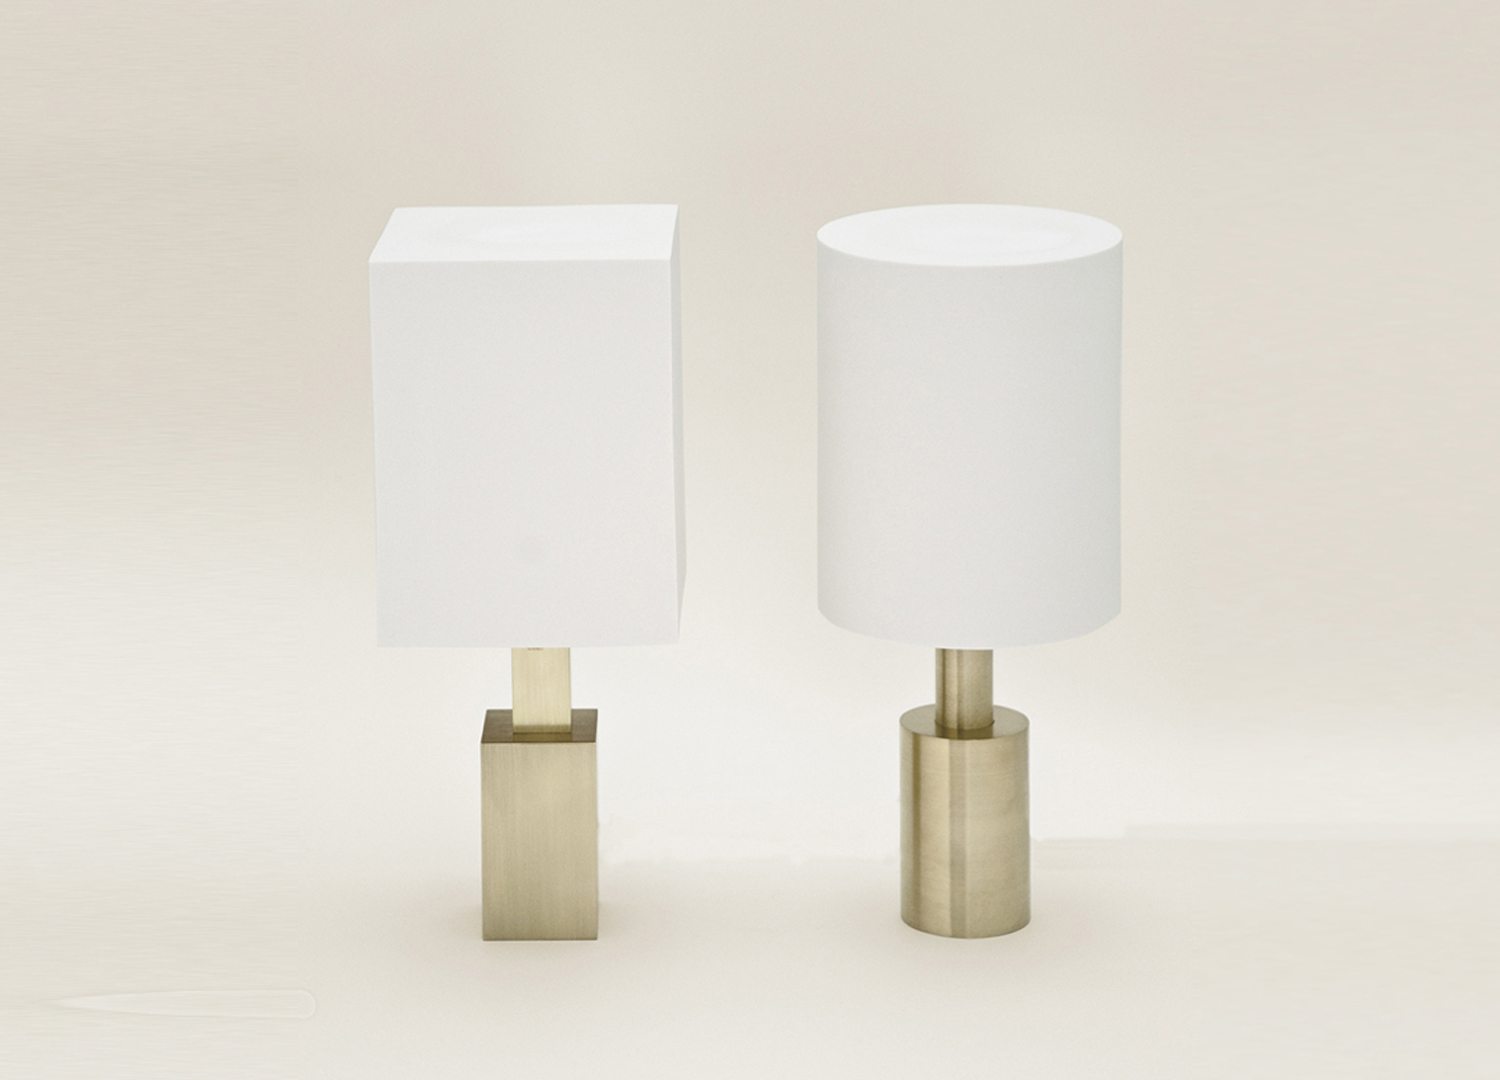 BRASS & PORCELAIN TABLE LAMPS - Translucent porcelain shades on solid brass bases, these lamps elevate basic geometric forms with refined materials and craft. The translucent porcelain gives a soft, warm glow. The circle and square make a mismatched yet elegant pair.Sizes: Rectangle: 16cm L x 16cm W x 26cm HCylinder: 16cm diameter x 26cm HAvailable by special orderphoto by David Trautrimas